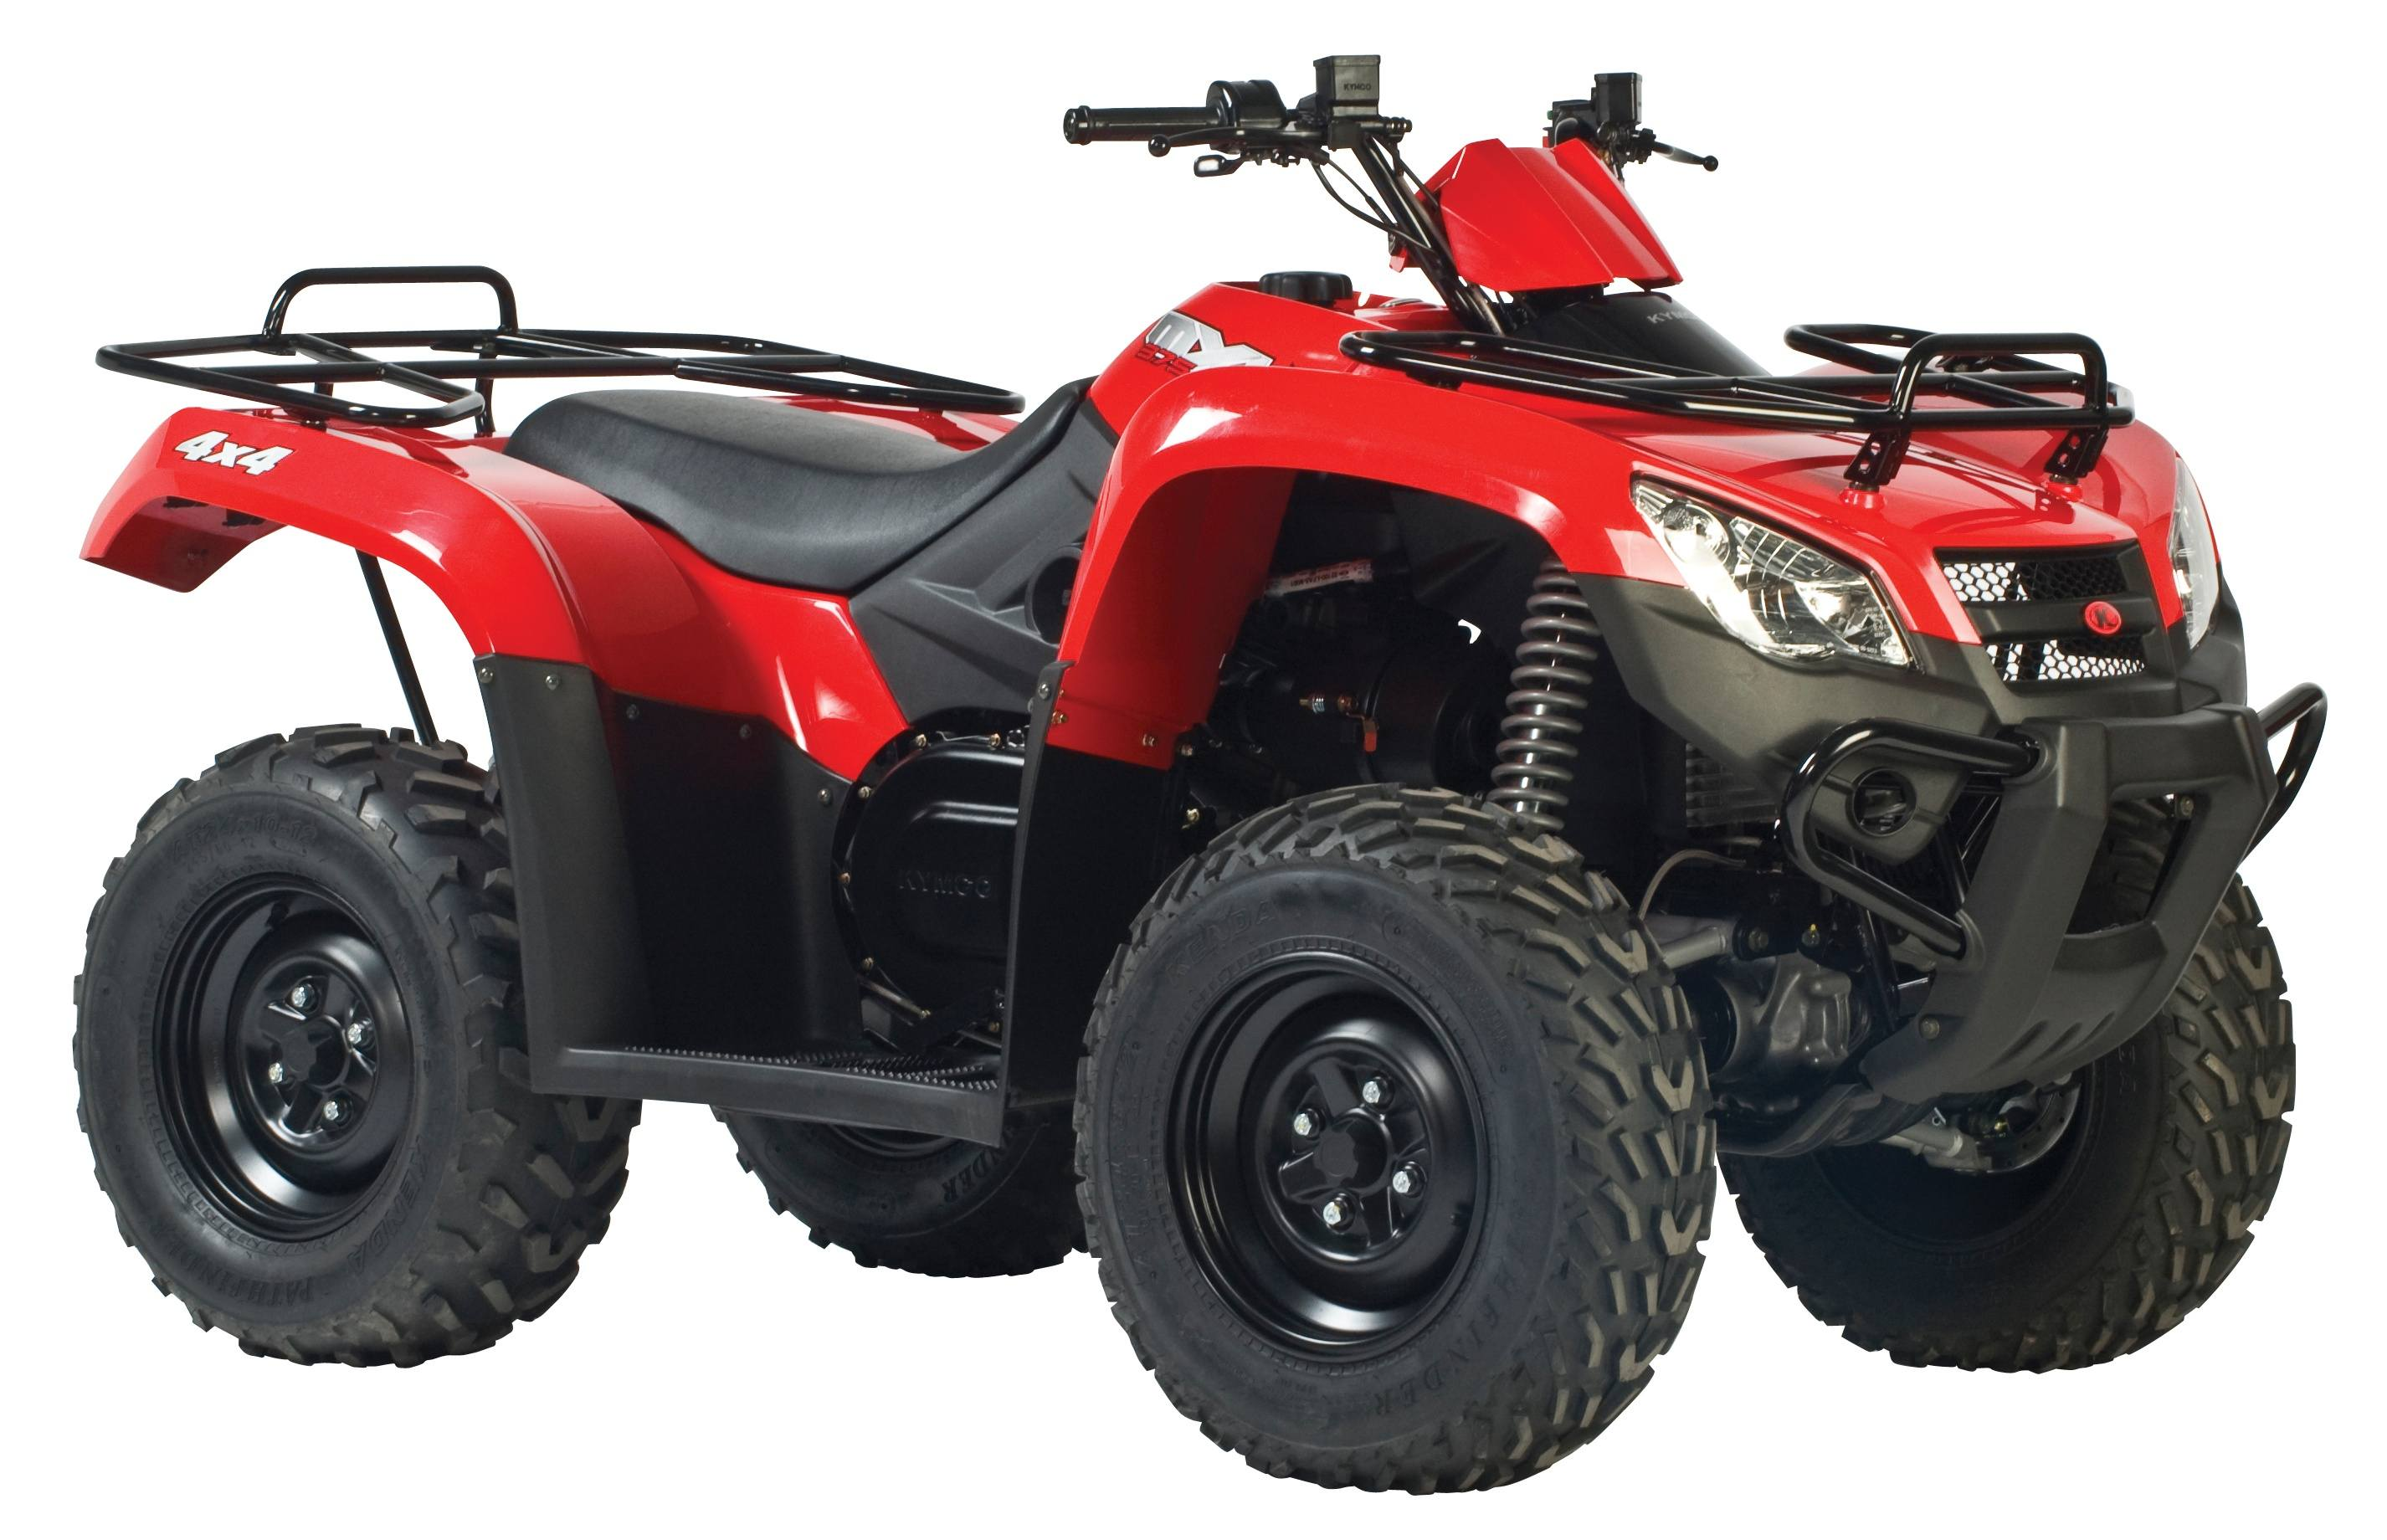 new 2016 kymco mxu 450i atvs in pelham al. Black Bedroom Furniture Sets. Home Design Ideas